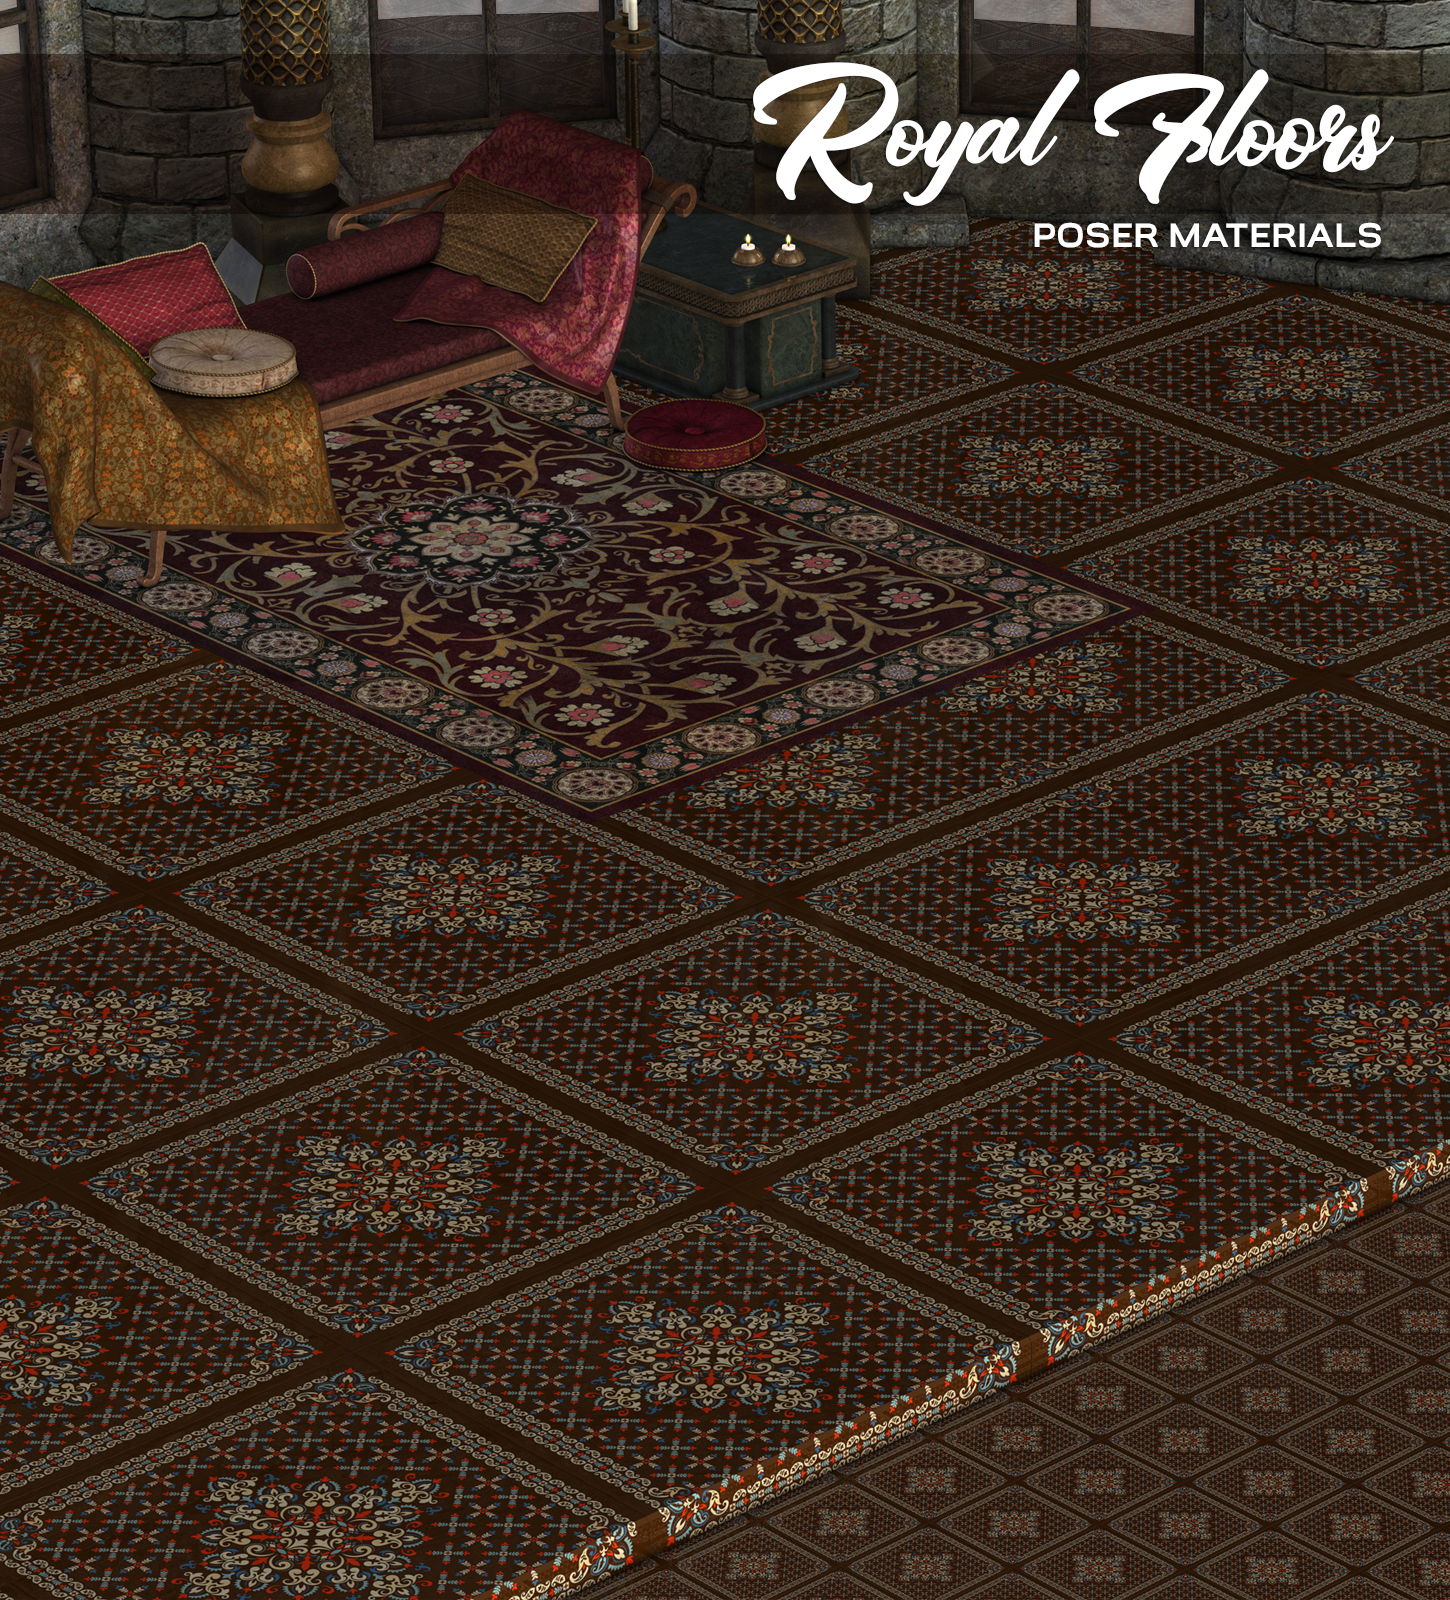 PM - Royal Floors